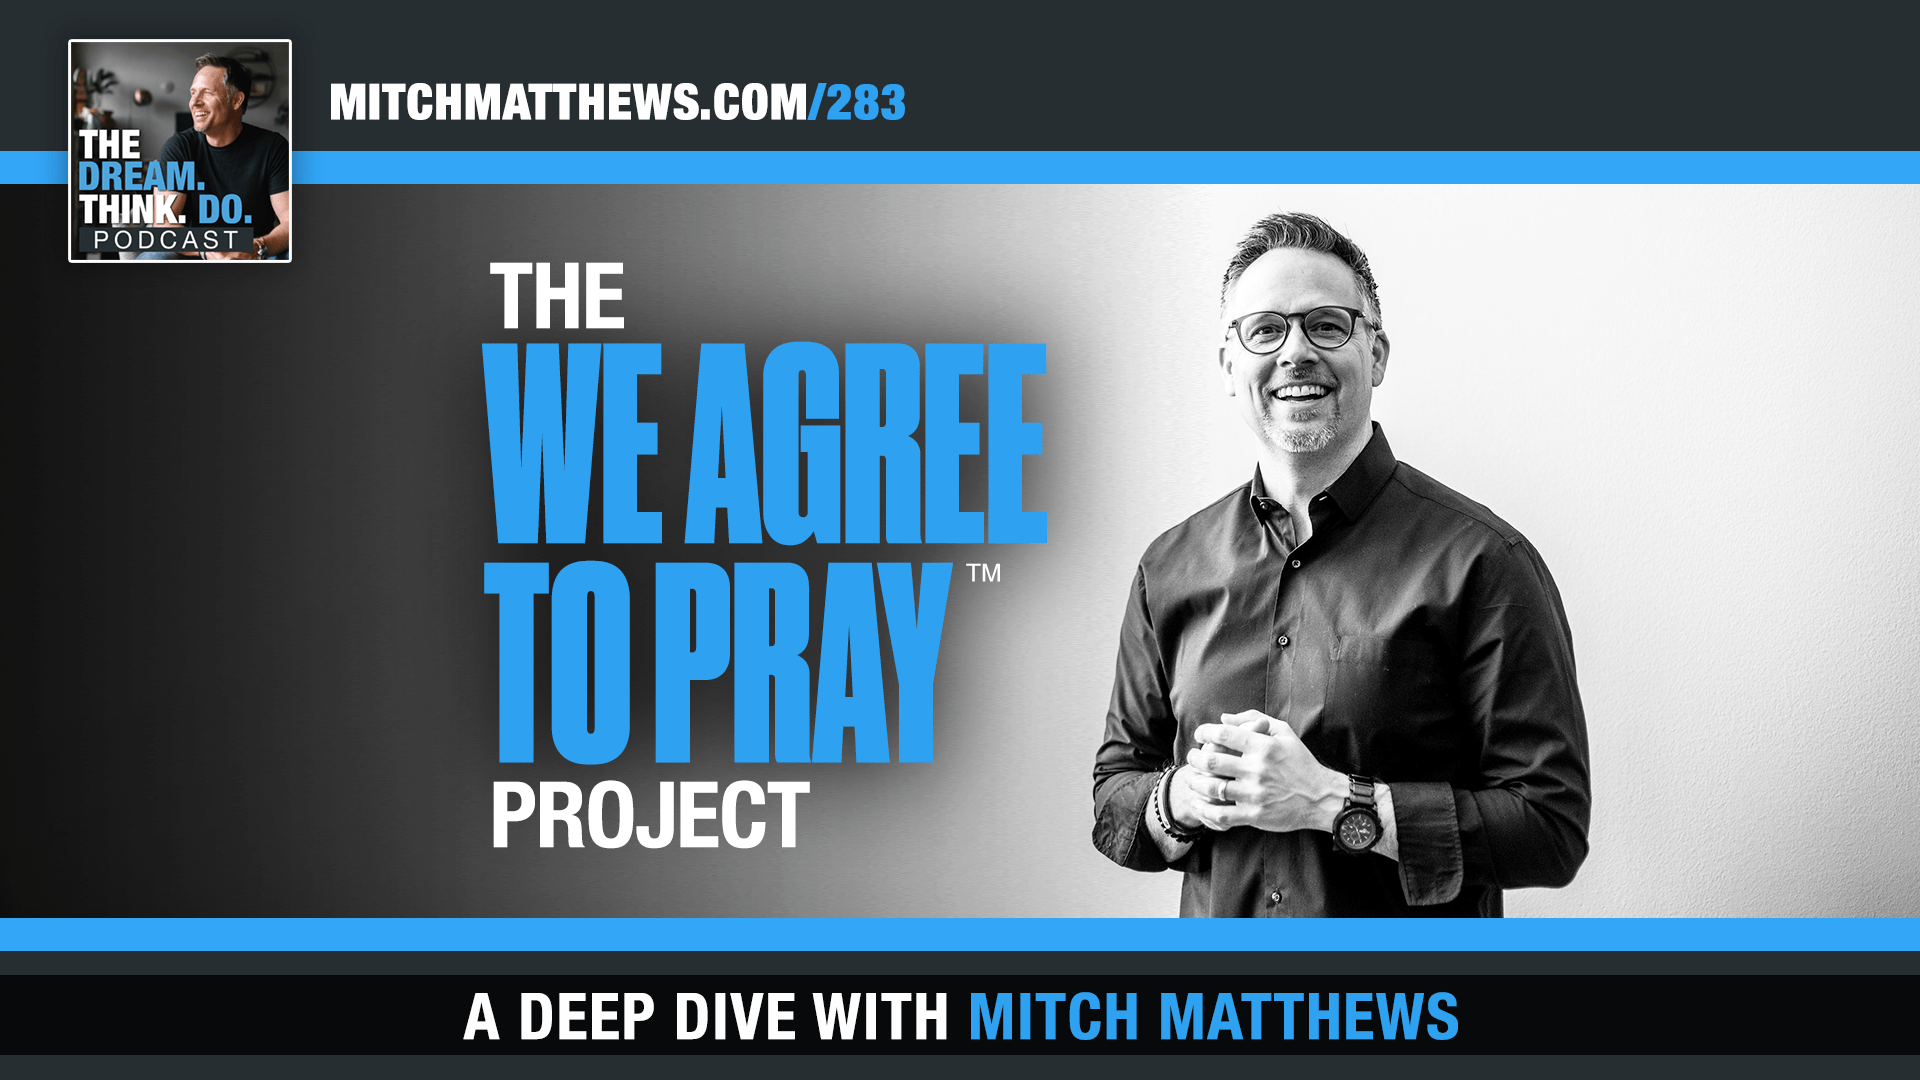 We Agree To Pray Project by Mitch Matthews